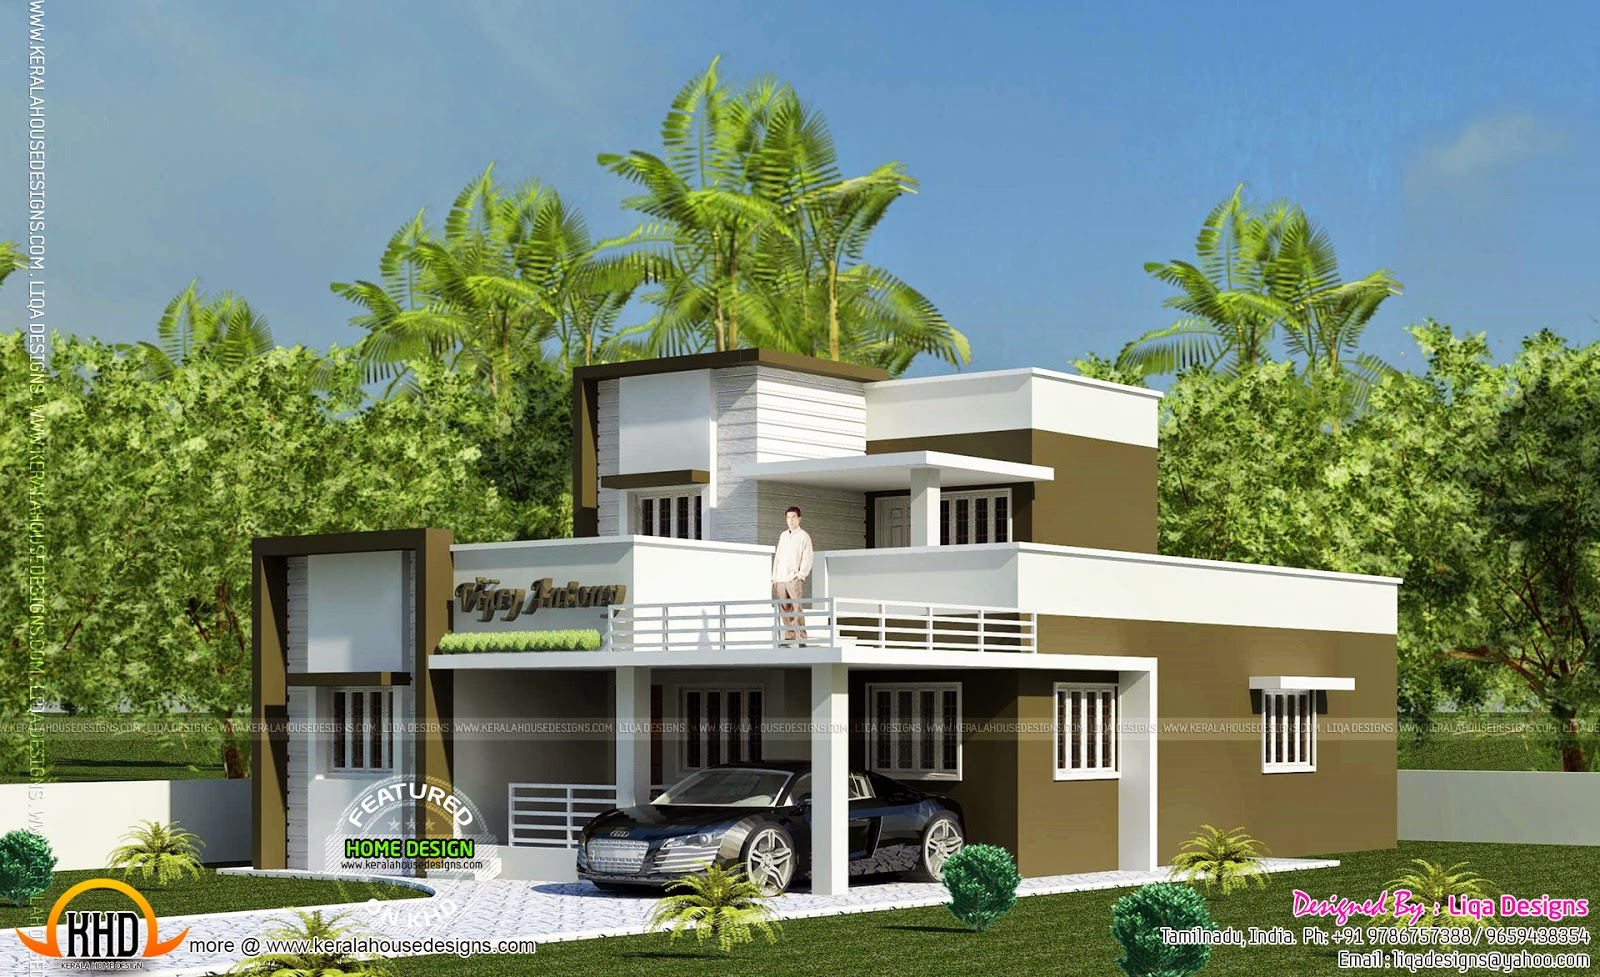 Simple house plans in tamilnadu front design for Tamilnadu house models